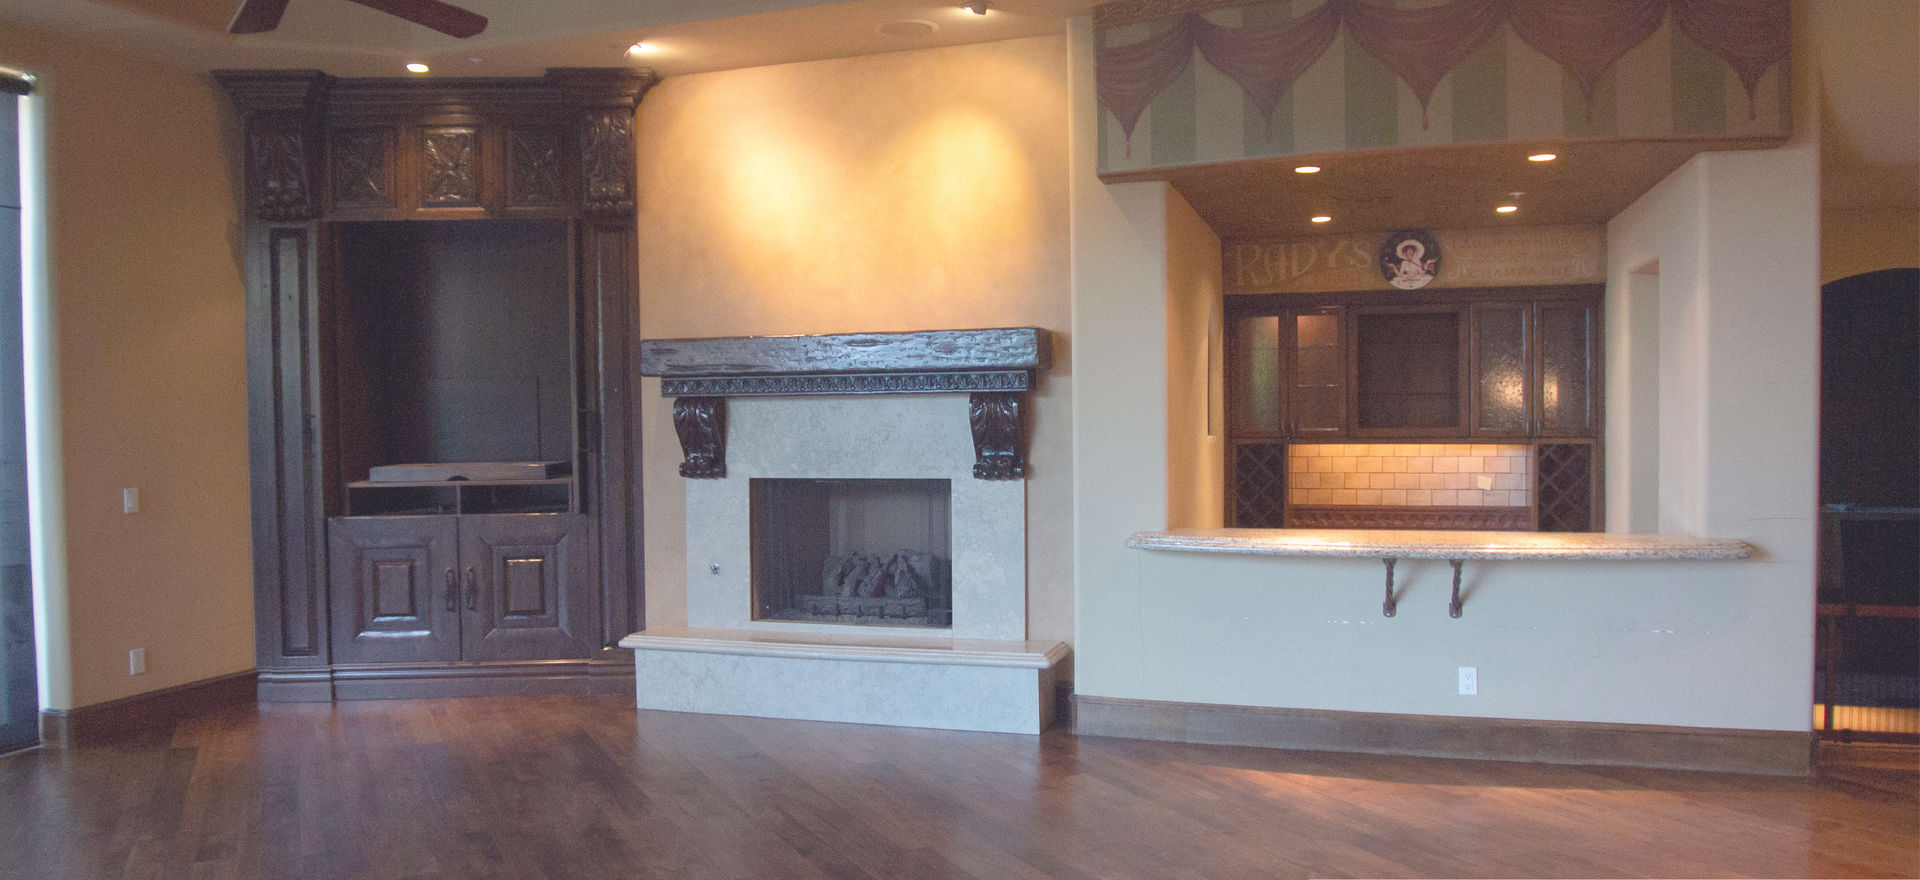 The orginal great room housed a heavy wooden TV case that no longer worked with today's flat screens, a fire place and a dated bar area.  We removed the built in and created an entire new focal wall for the fireplace and TV. The bar also got a refreshing contemporary new look.